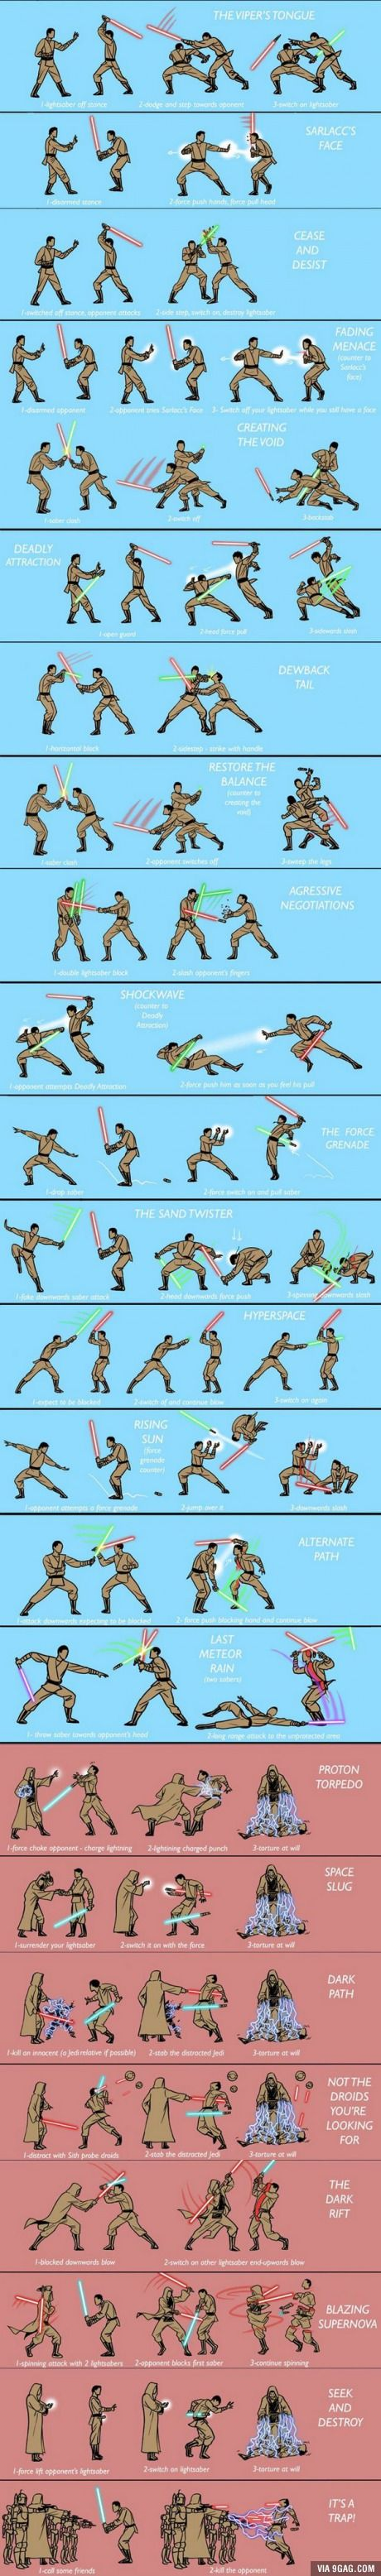 Alternate Lightsaber Techniques, nerds are the best!